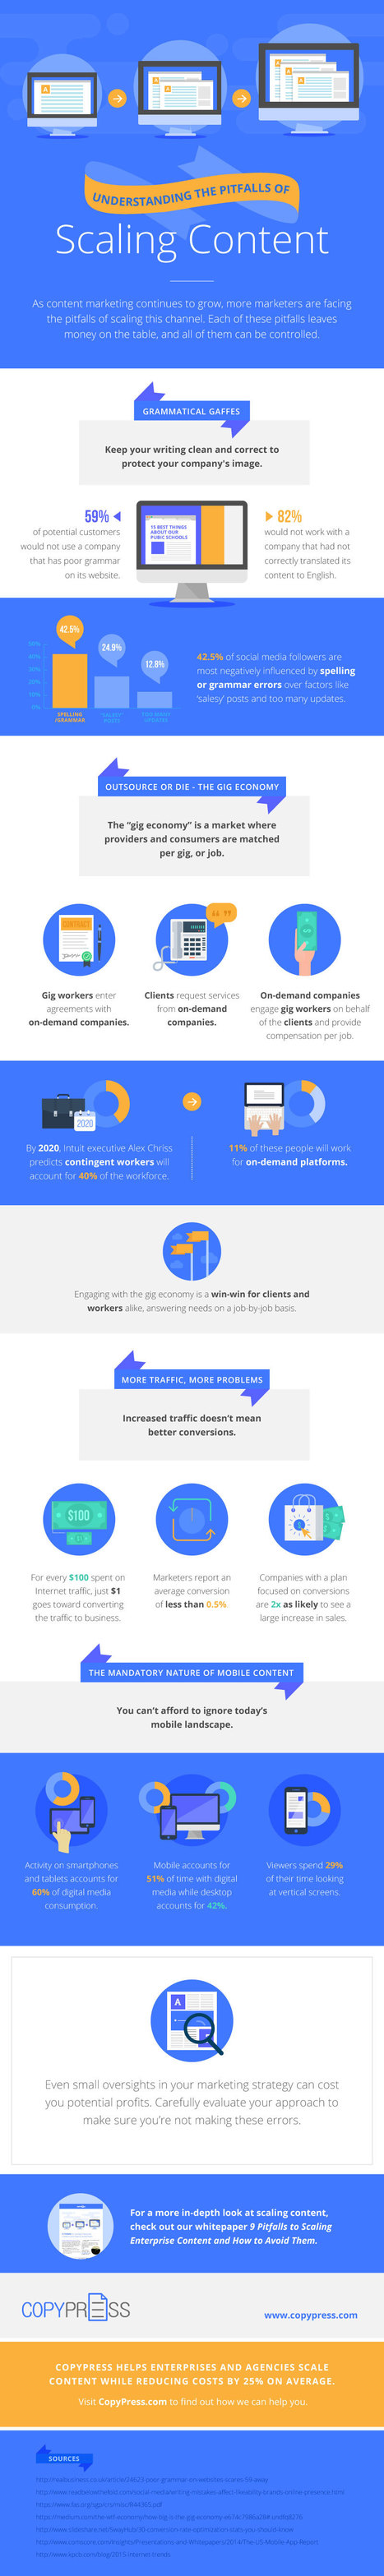 Avoiding the Pitfalls of Scaling Quality Content #Infographic | MarketingHits | Scoop.it